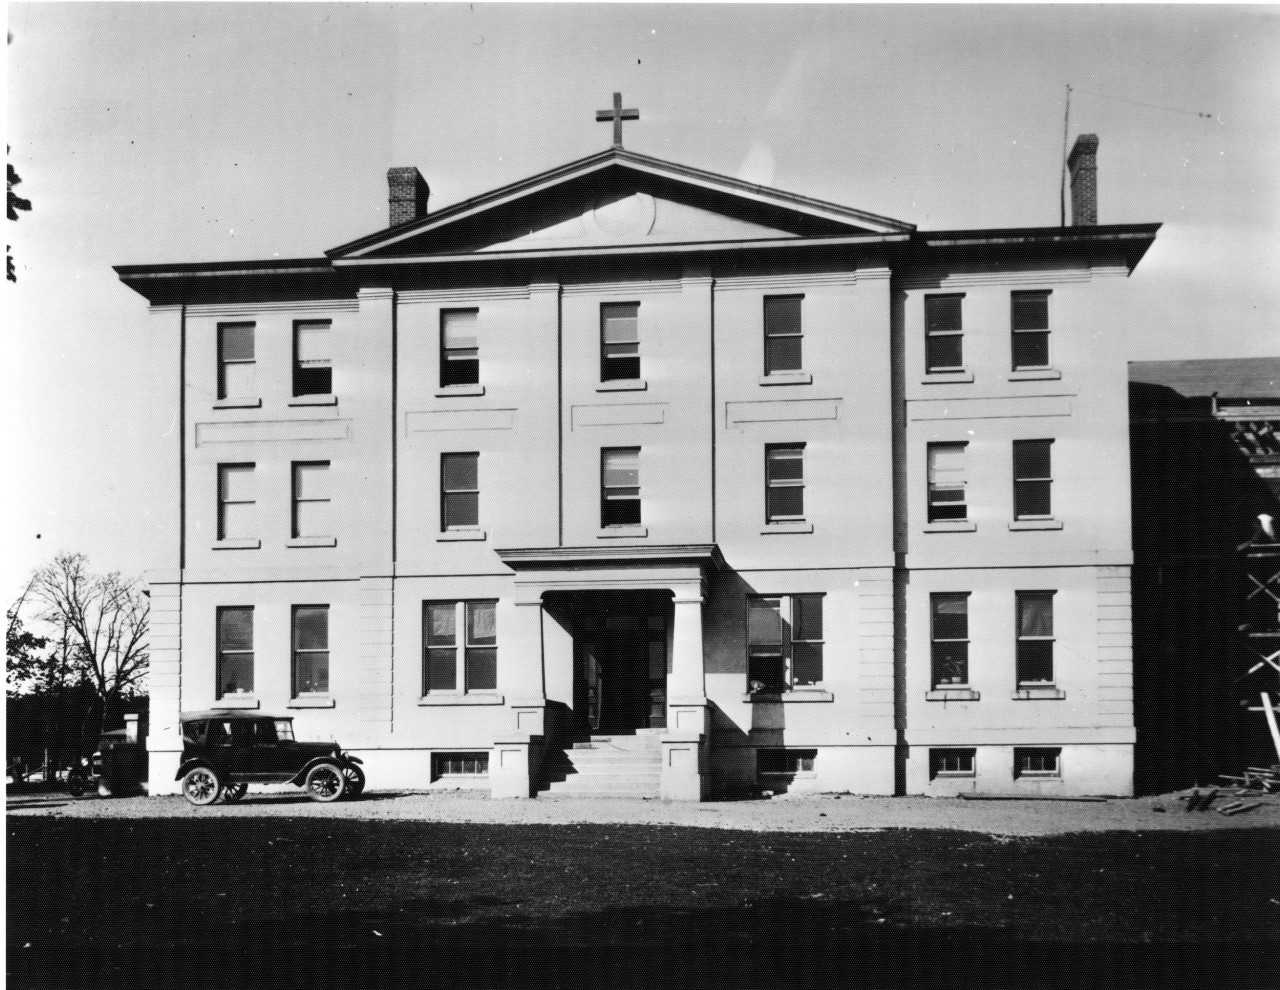 The court-ordered compensation to victims had the Christian Brothers demolish the orphanage and sell the land to property developers for $8 million, which was paid to victims. City of St. John's Archive